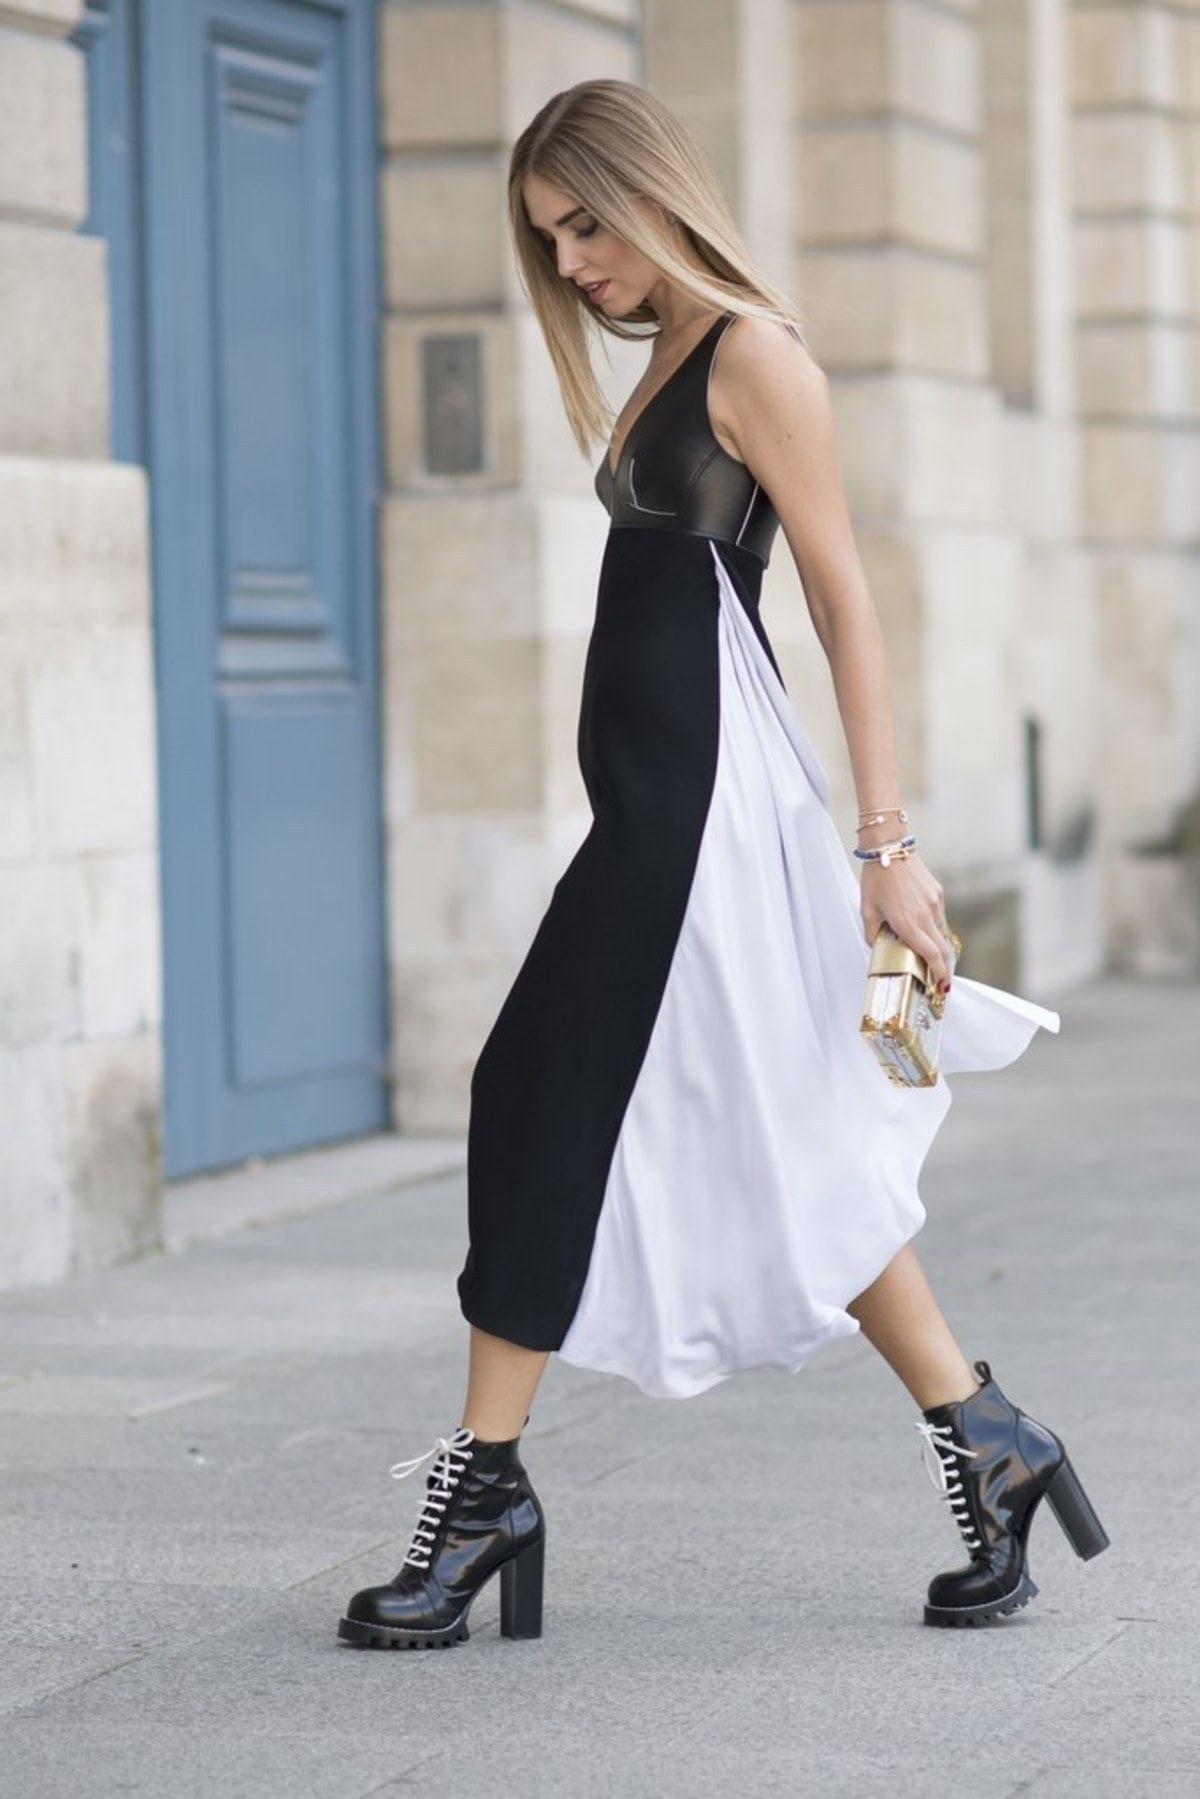 chiara-ferragni-black-boots-dress